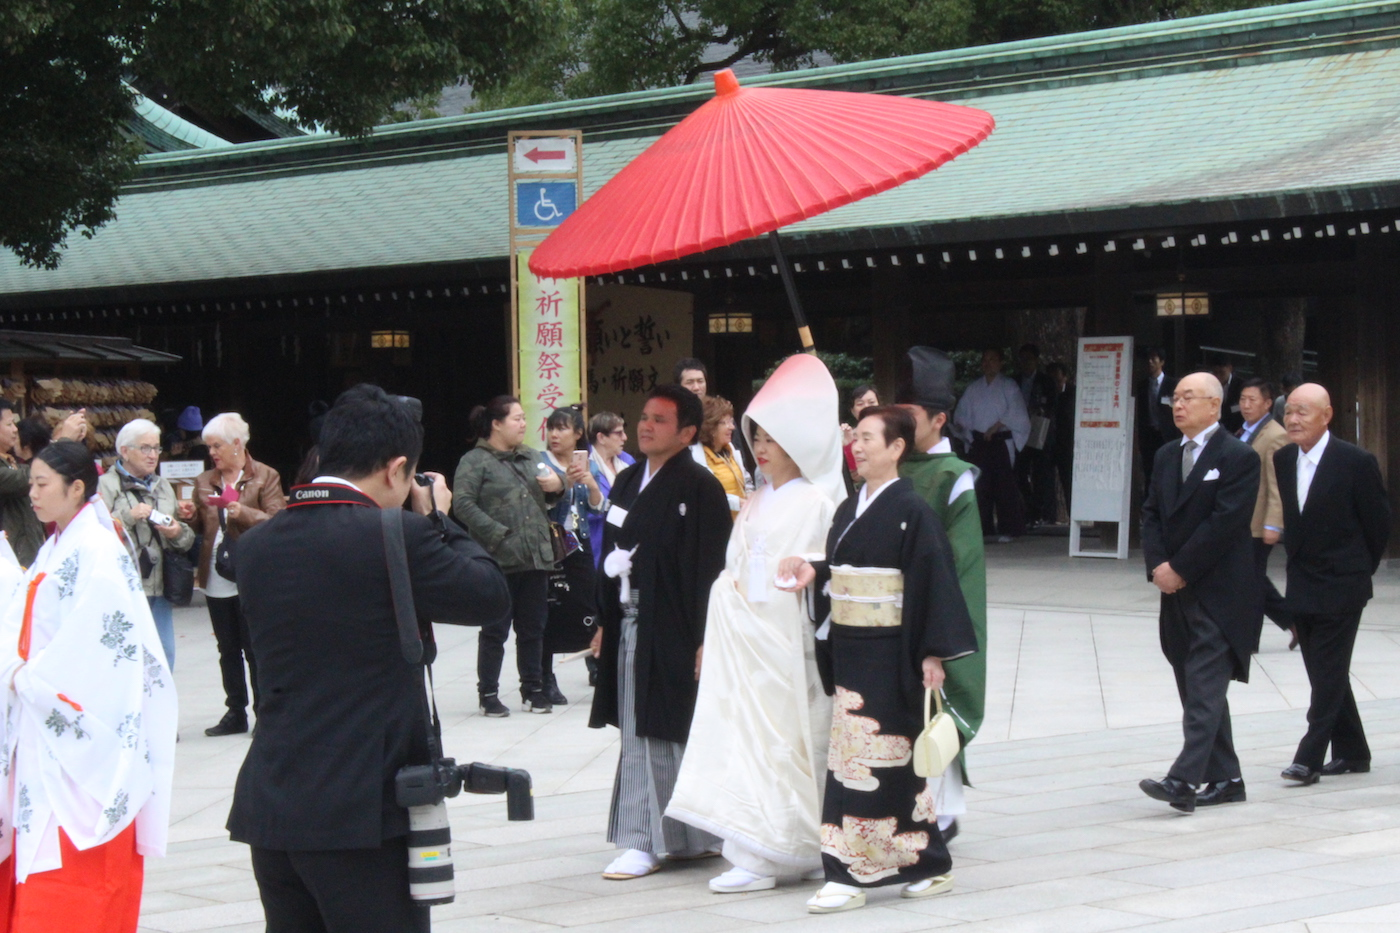 While we were at the shrine a procession came through.